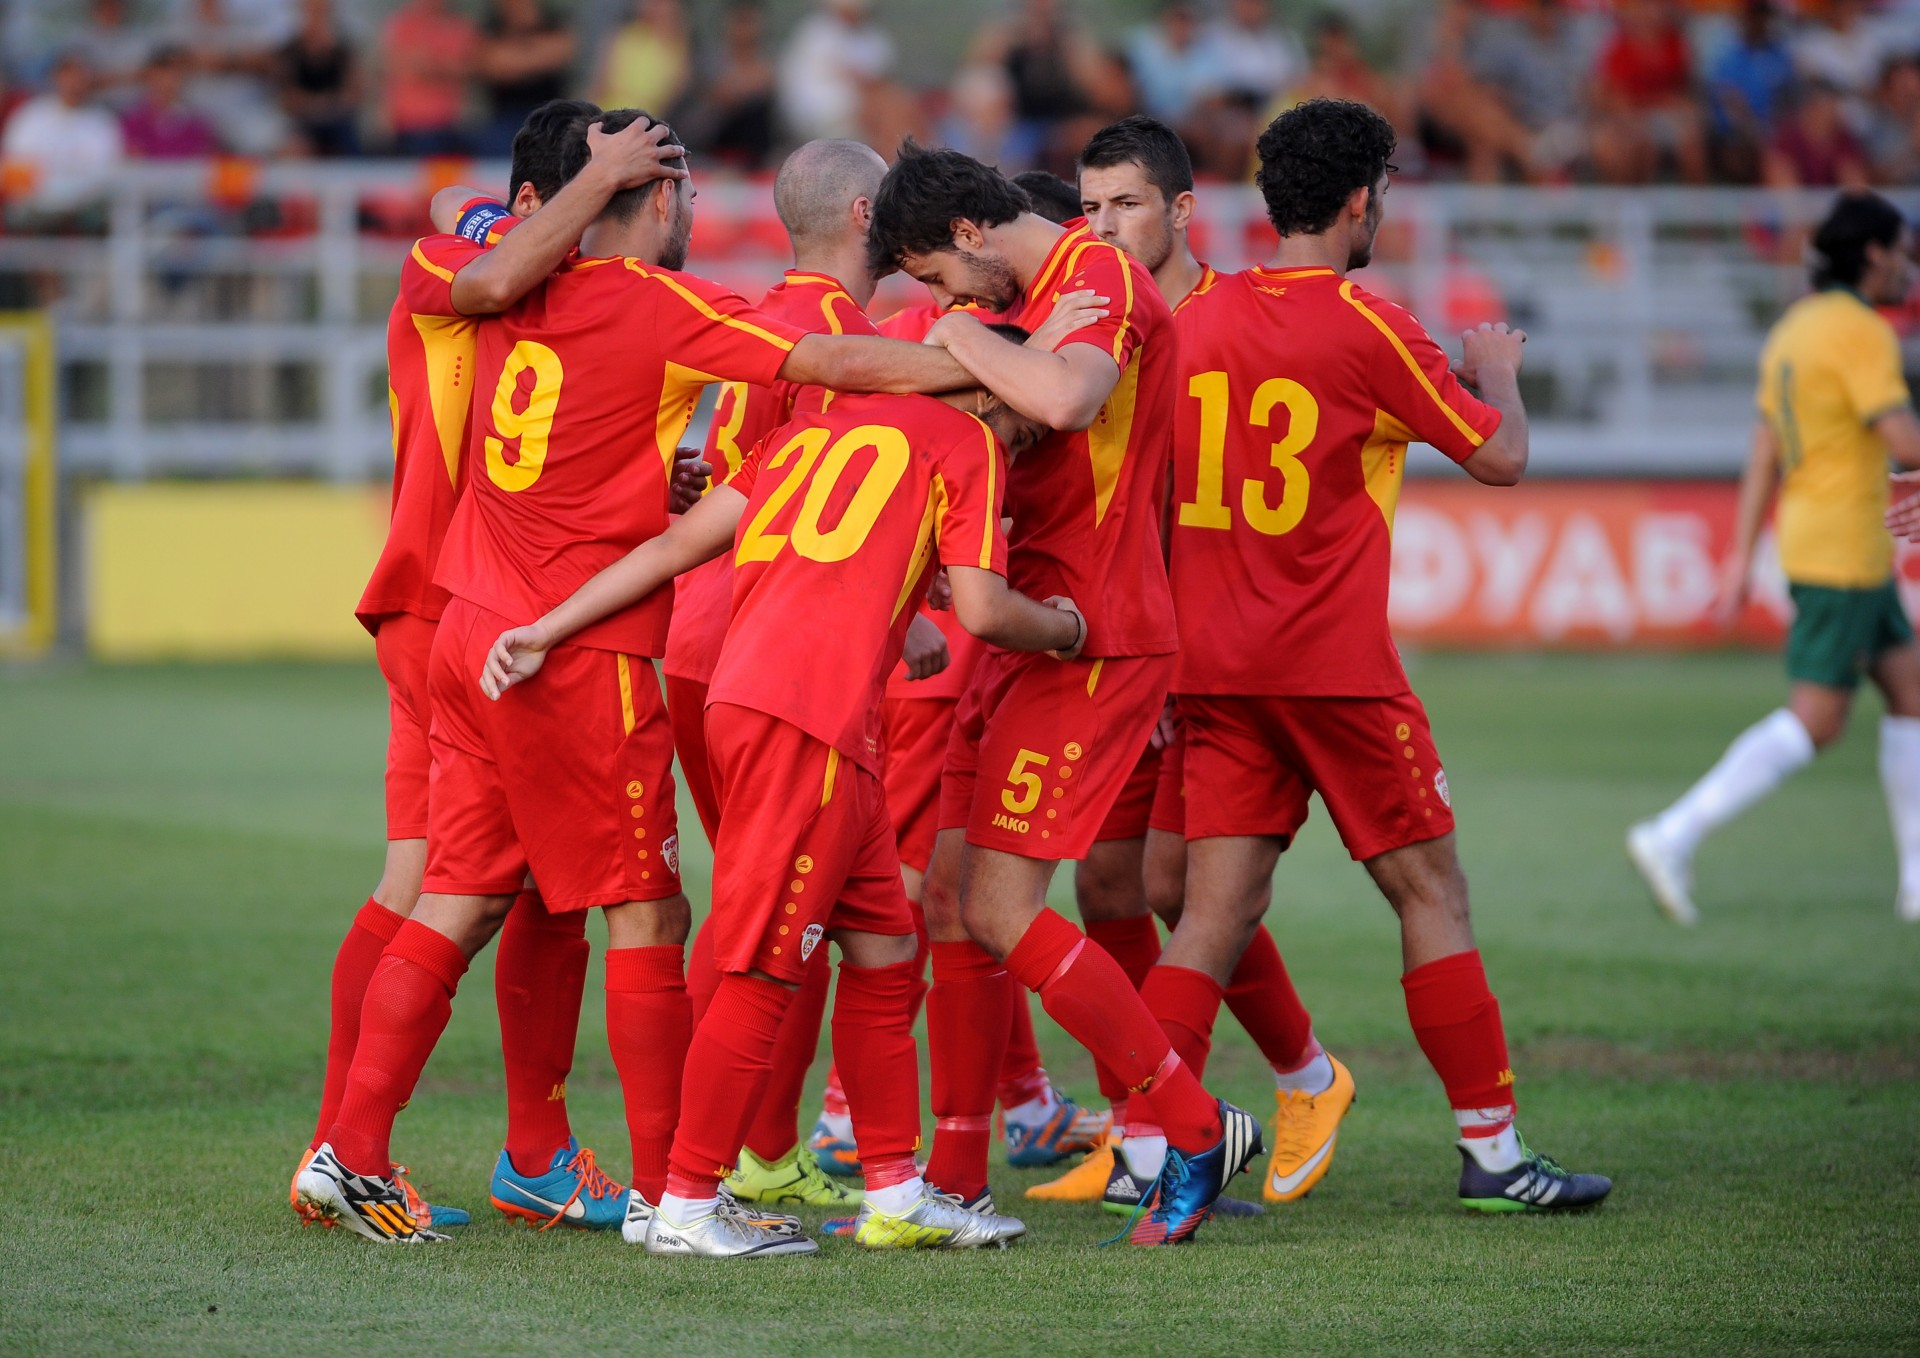 FYROM loses a place in the FIFA ranking